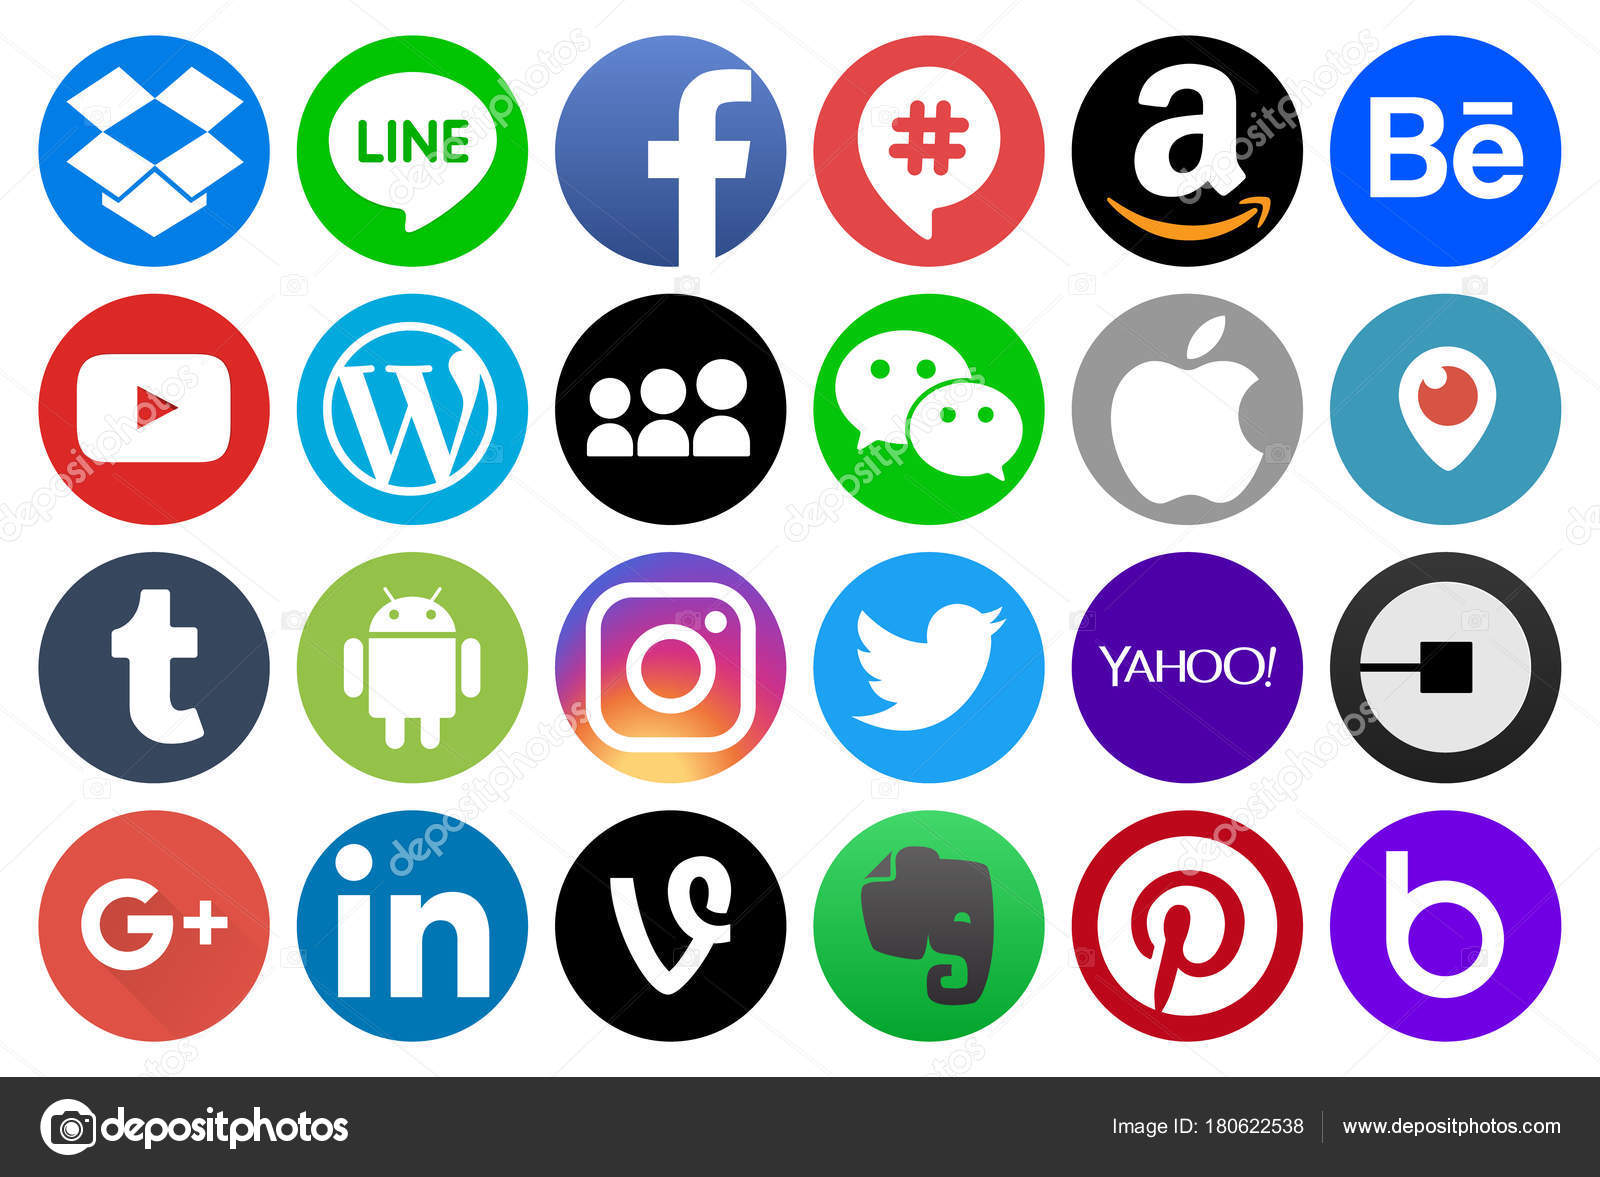 Different Circle Popular Social Media Other Icons Linkedin Blogger